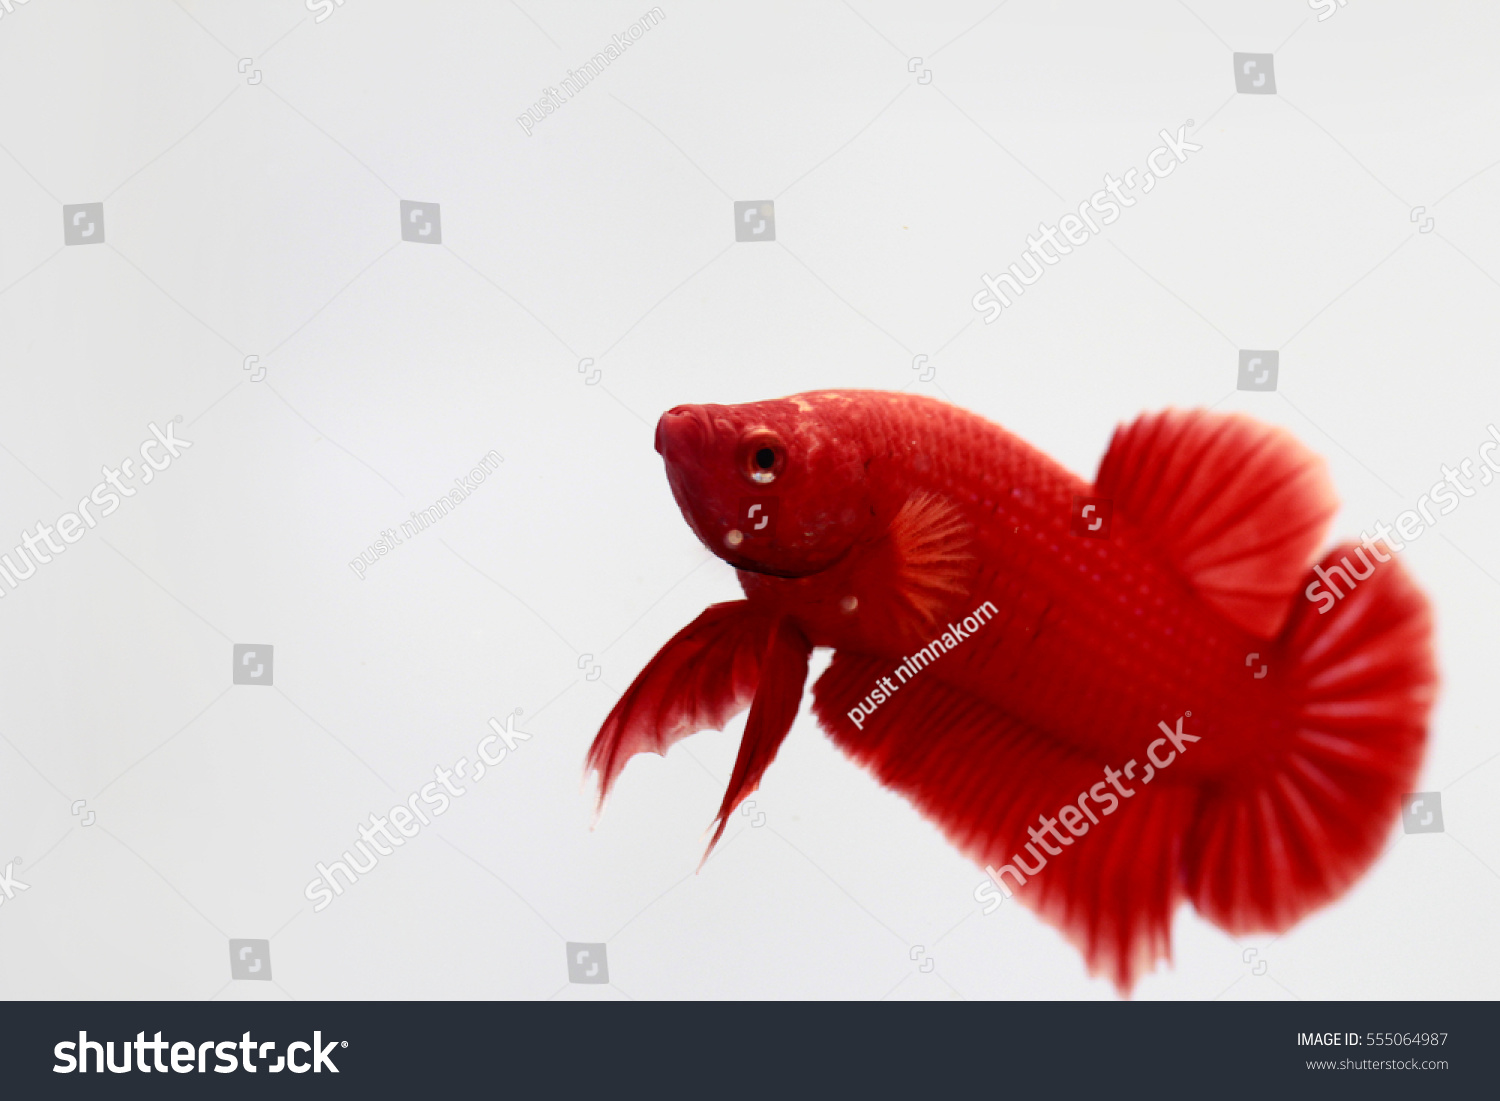 Red Color Betta Fish Stock Photo (Royalty Free) 555064987 - Shutterstock